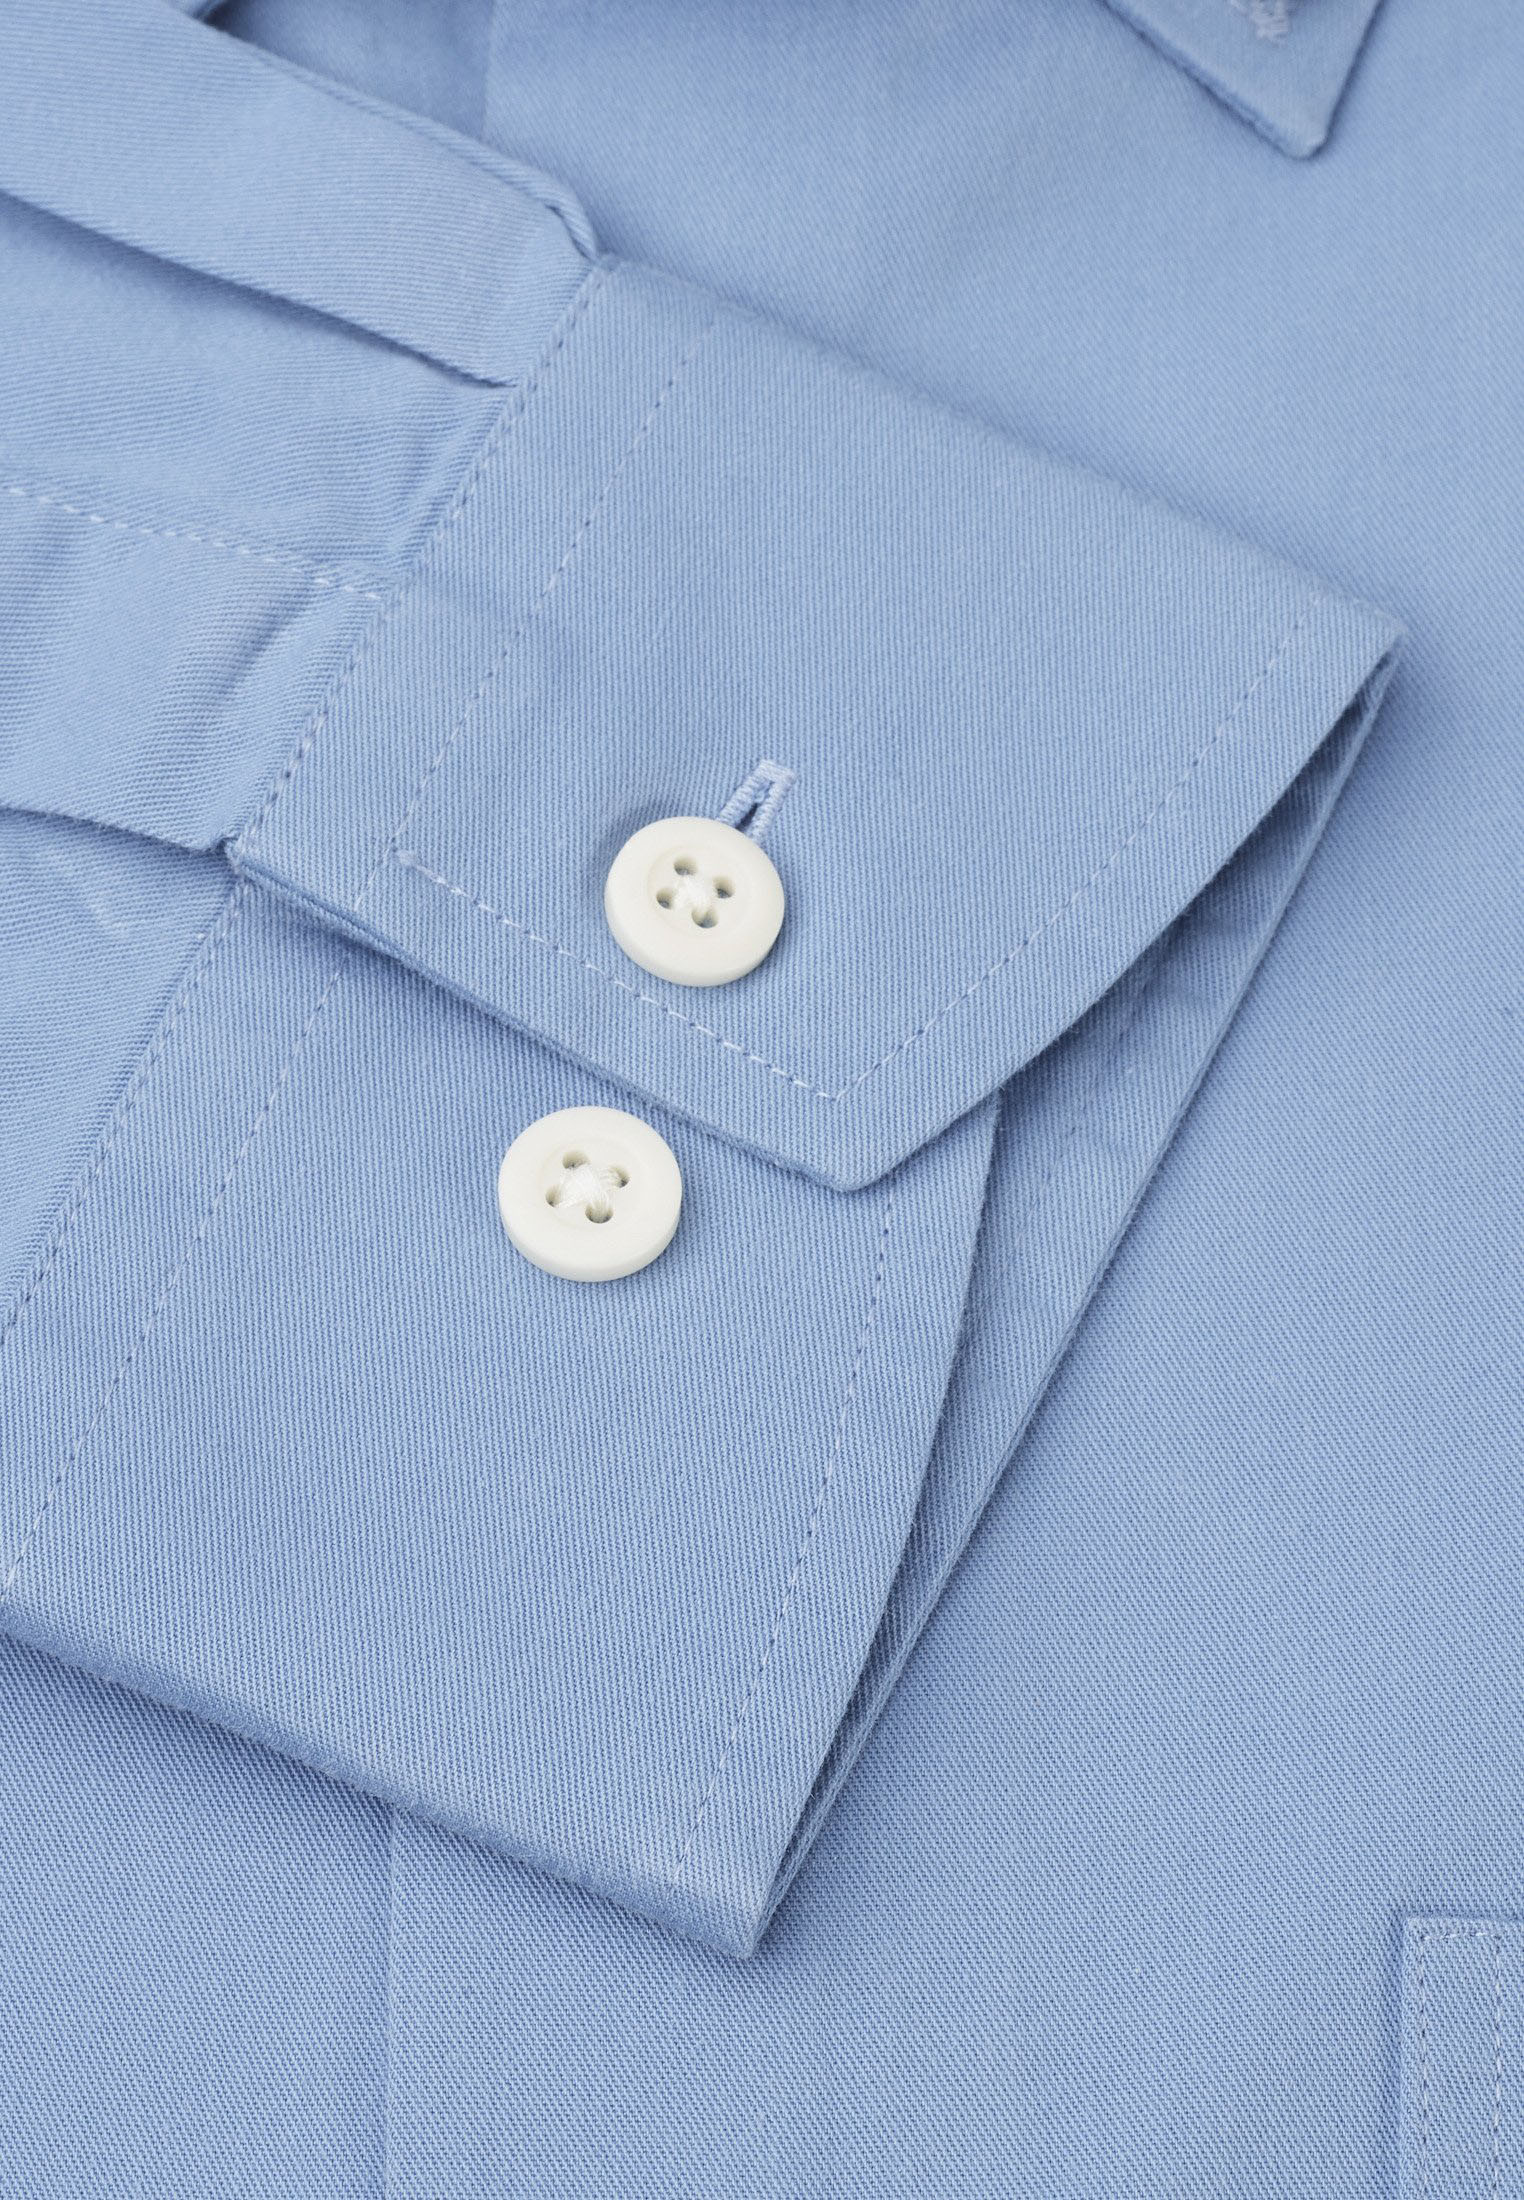 Classic and Tailored Fit Sky Blue Garment Washed Twill Shirt